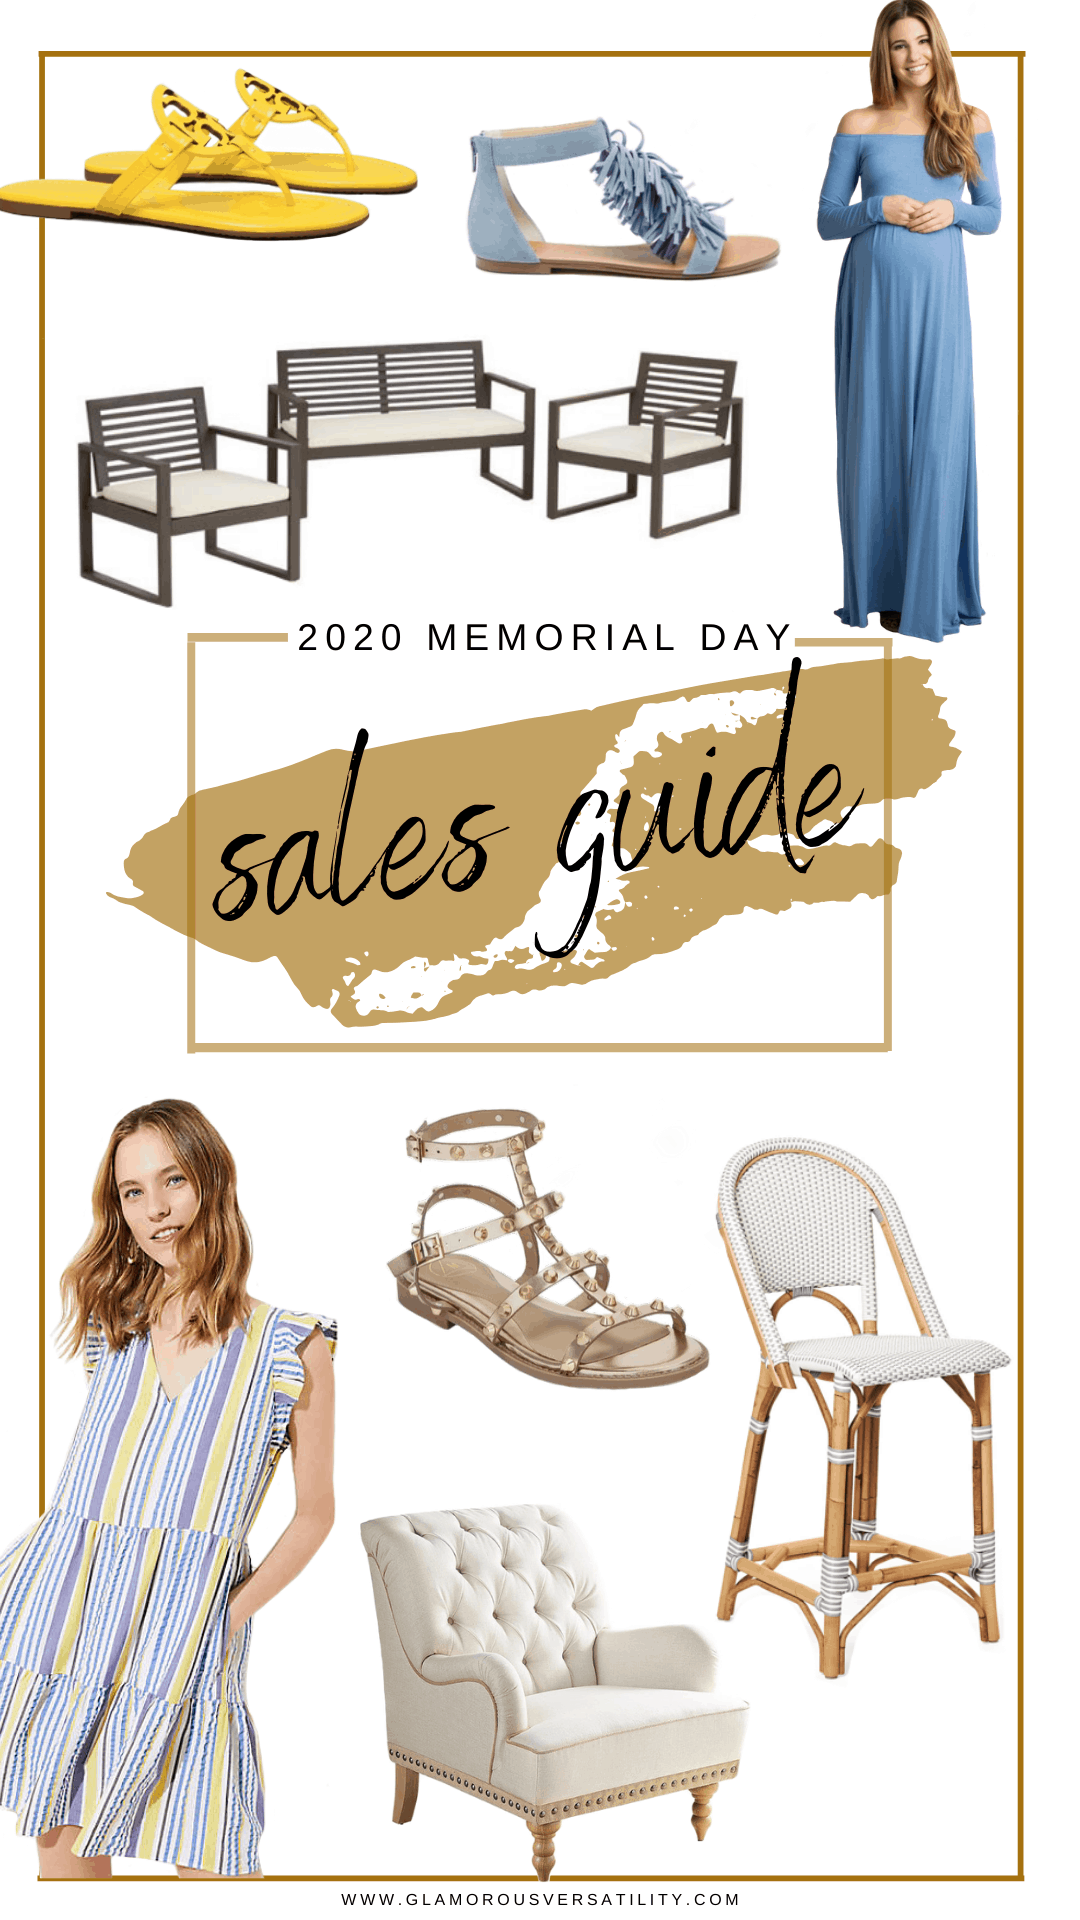 Memorial Day Sales by popular Dallas life and style blog, Glamorous Versatility: collage image of a Serena and Lily bar stool, patio furniture set, blue fringe sandals, Tori Birch slide sandals, studded gladiator sandals, tuft white armchair, blue maxi maternity dress, and tiered stripe dress with flutter sleeves.